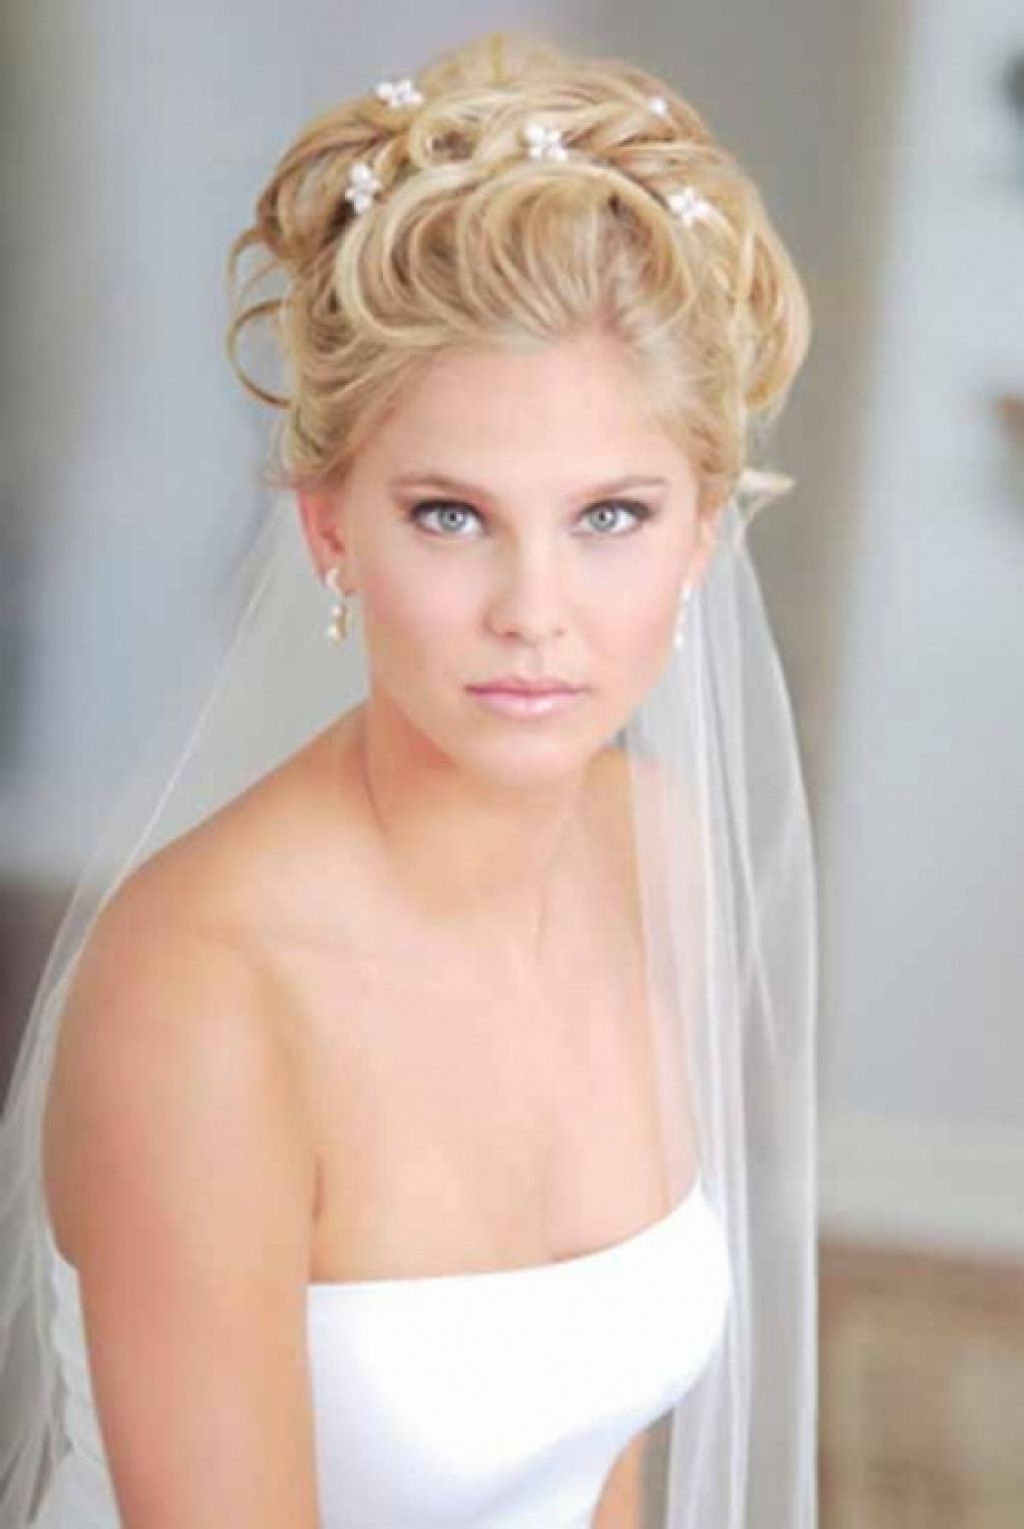 Ideas Breathtaking Short Wedding Hairstyles For Natural Black Intended For Popular Wedding Hairstyles For Short Hair With Veil (View 3 of 15)